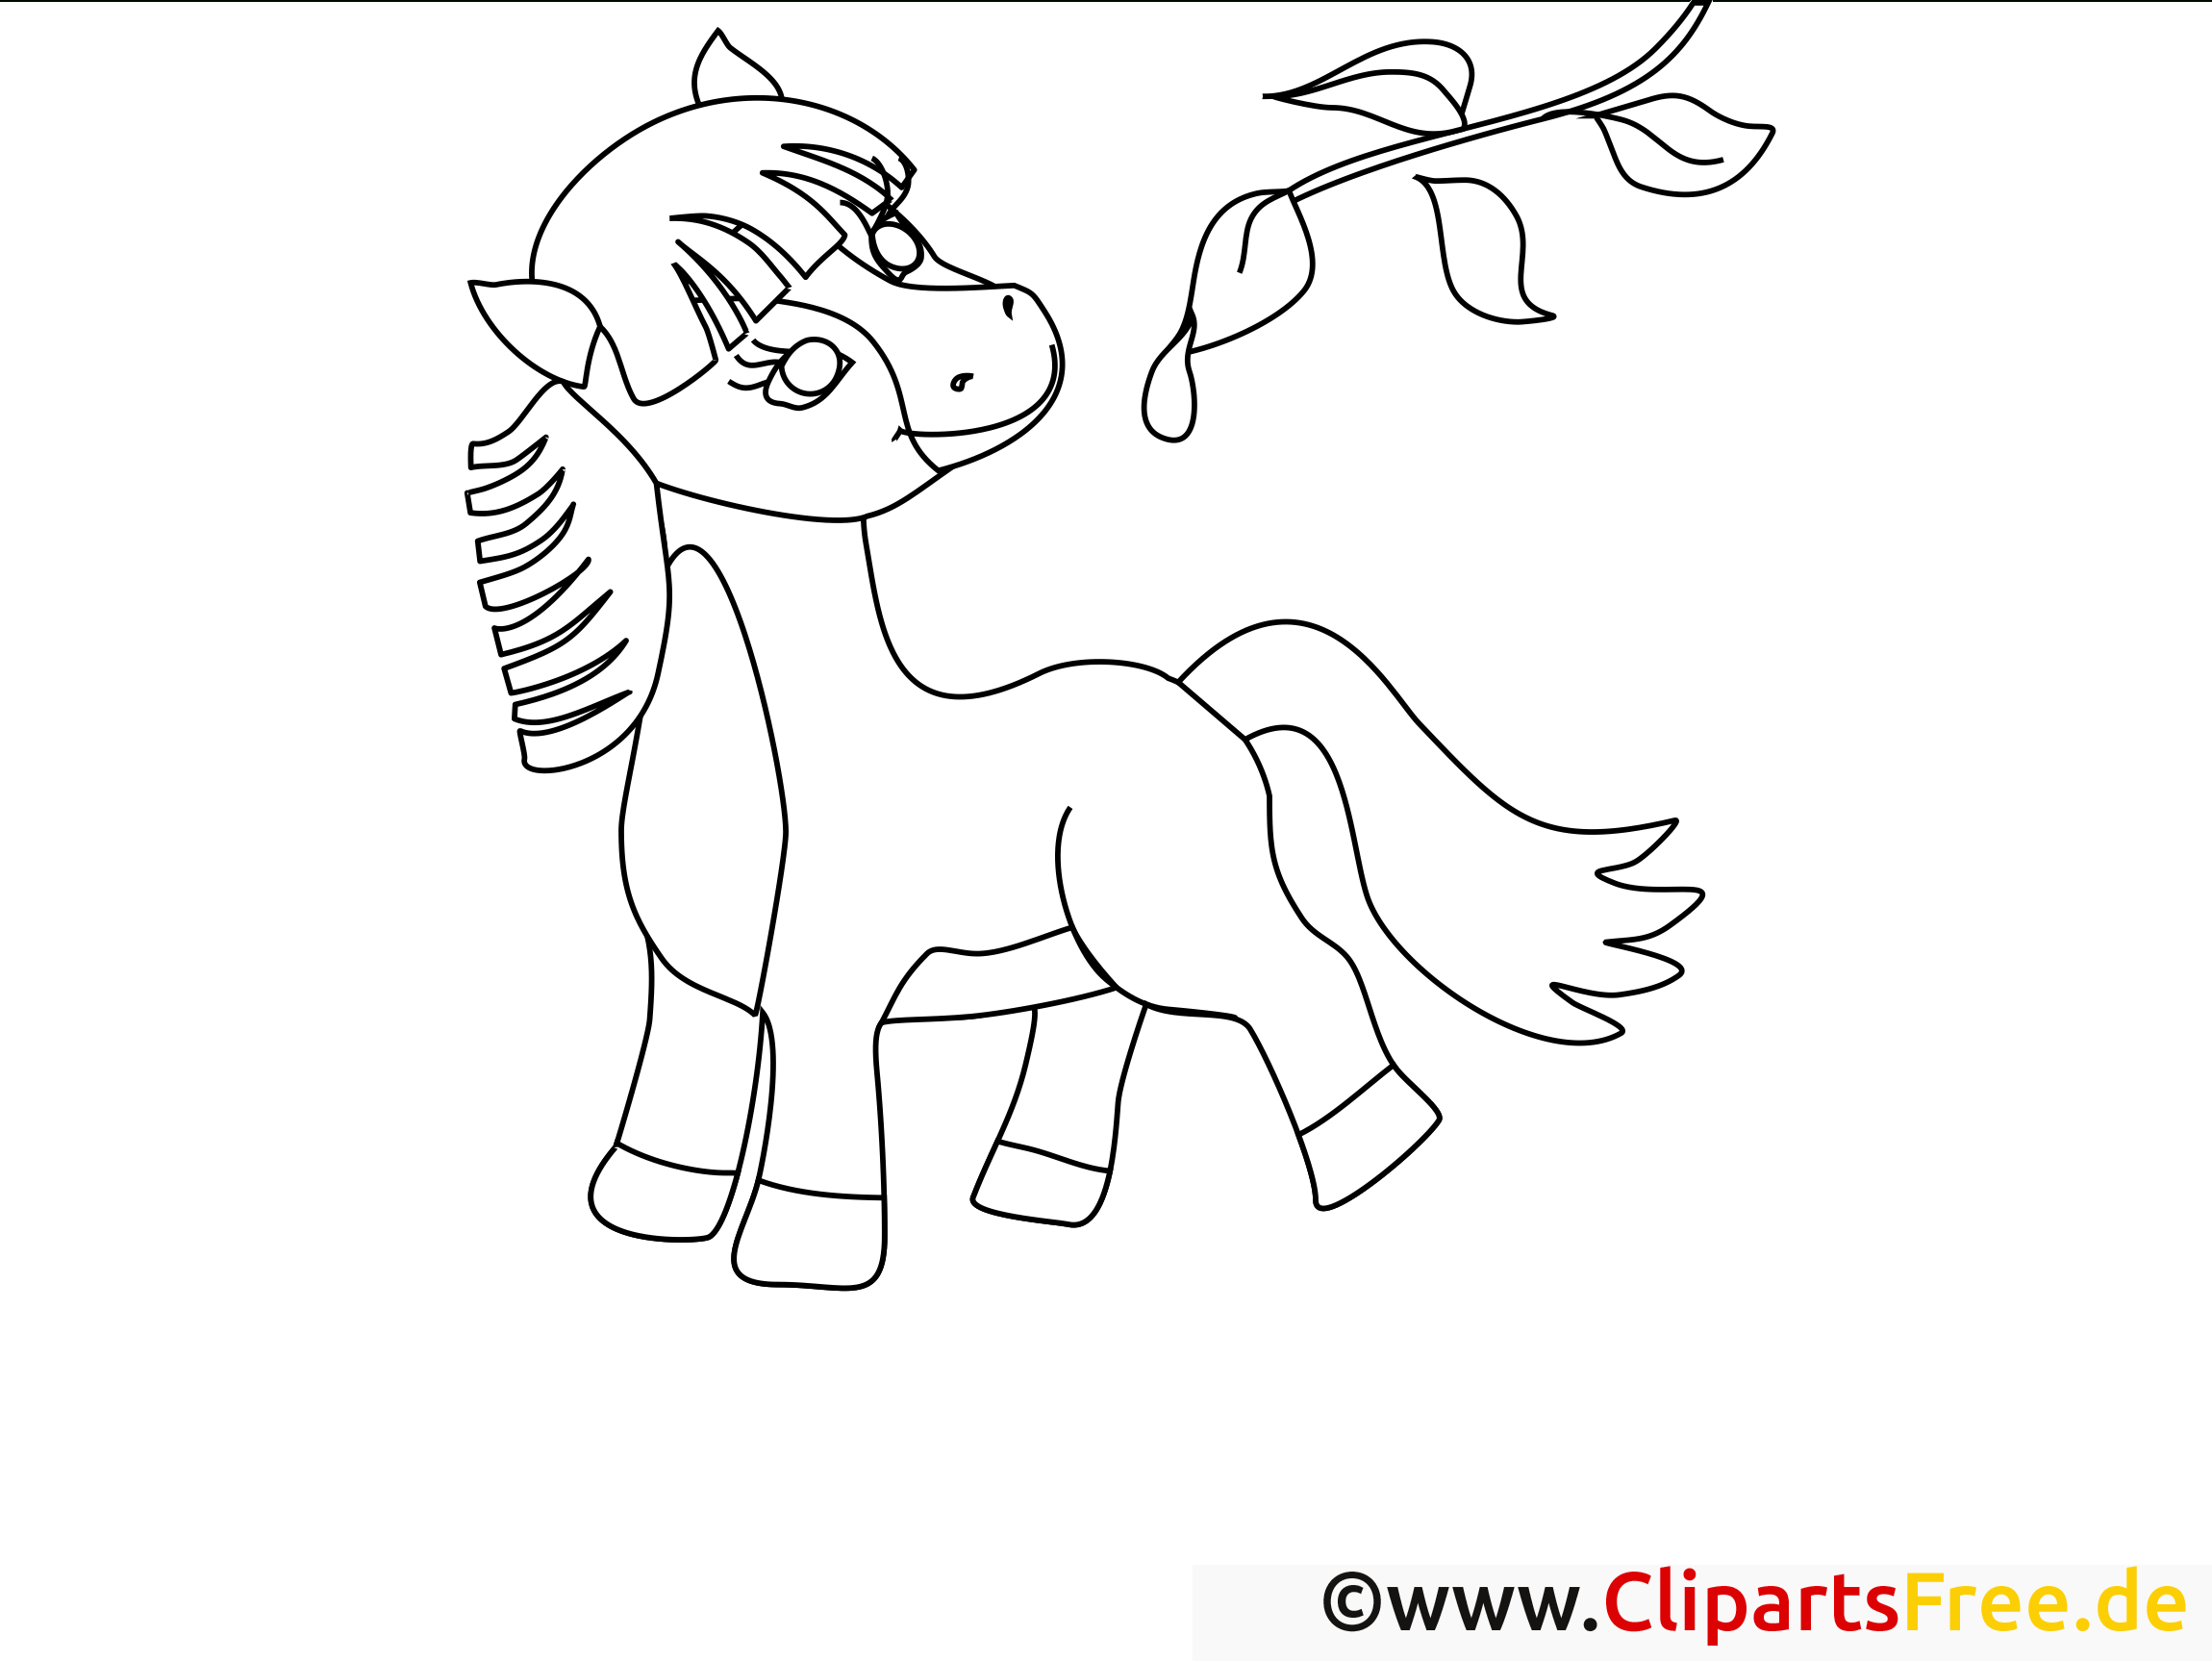 Branche Clipart – Cheval Dessins À Colorier - Chevaux destiné Image De Cheval A Colorier